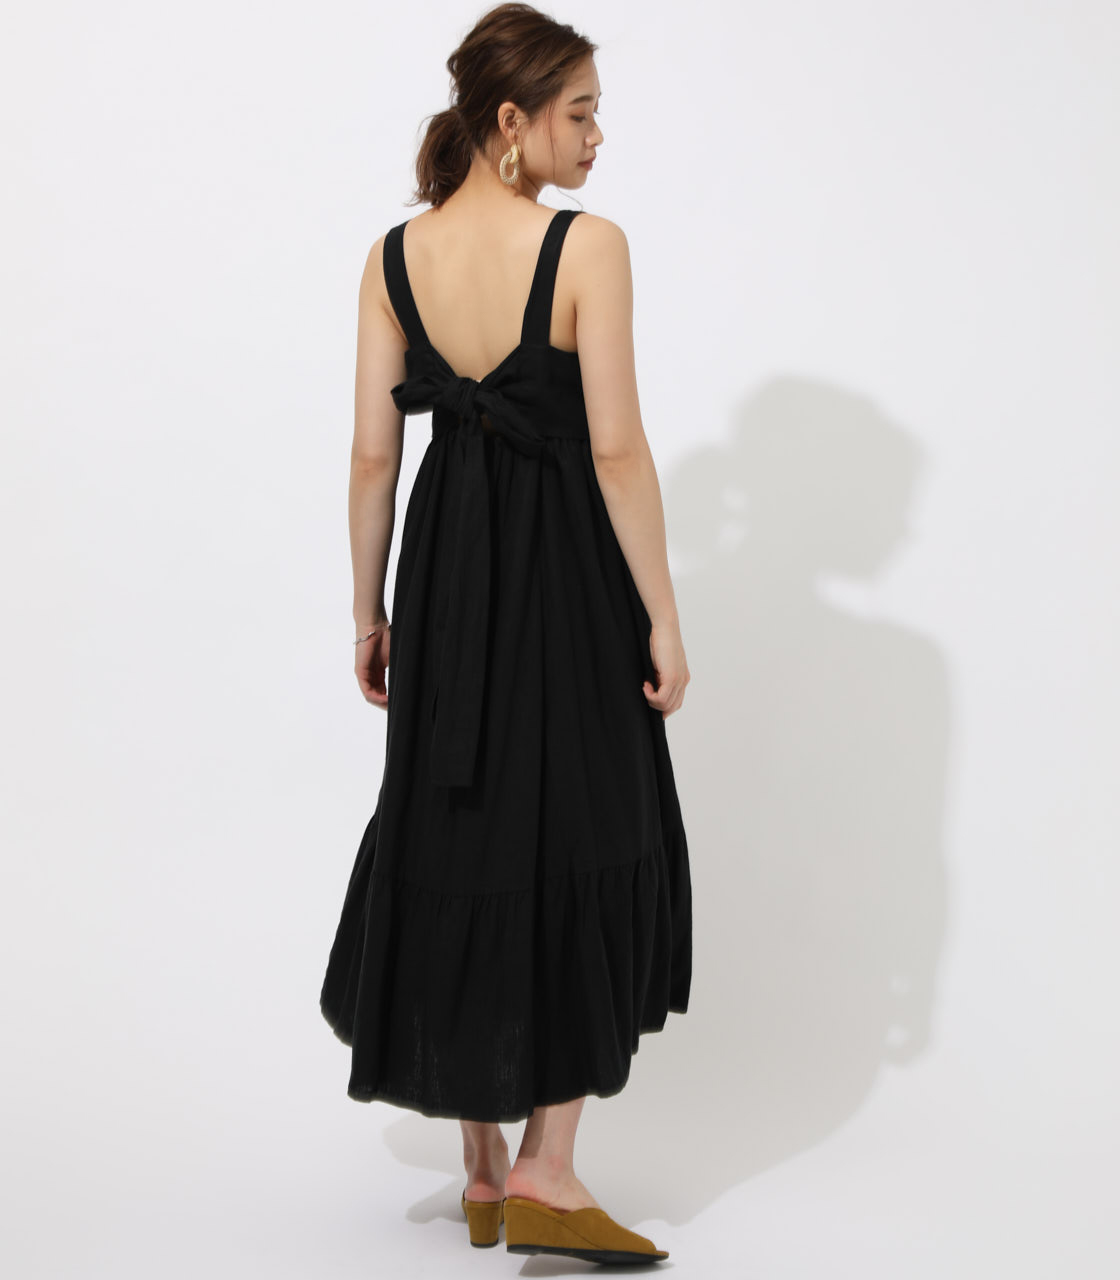 BACK RIBBON TIERED ONEPIECE 詳細画像 BLK 2